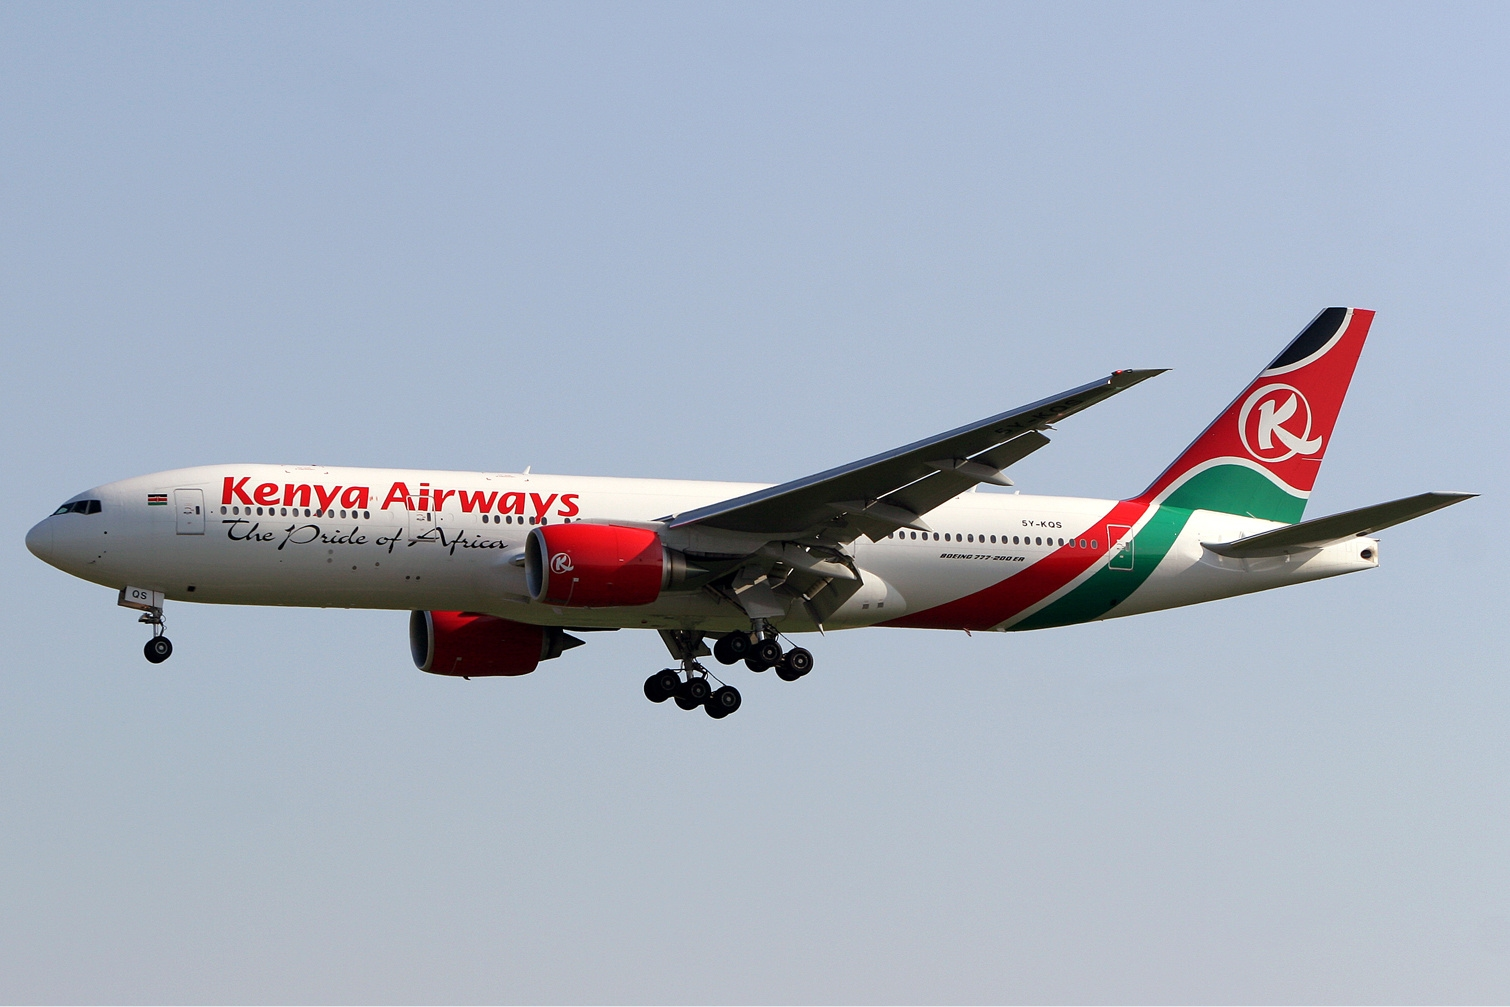 kenya airways Kenya airways one of the best and most respected airline companies in africa enjoy comfort on our true flat beds, relax at the simba lounge, and experience the warmth, professional etiquette and excellent hospitality from our well trained cabin crew even as you get to take advantage of our incredible fare bargains whether on economy or business class.